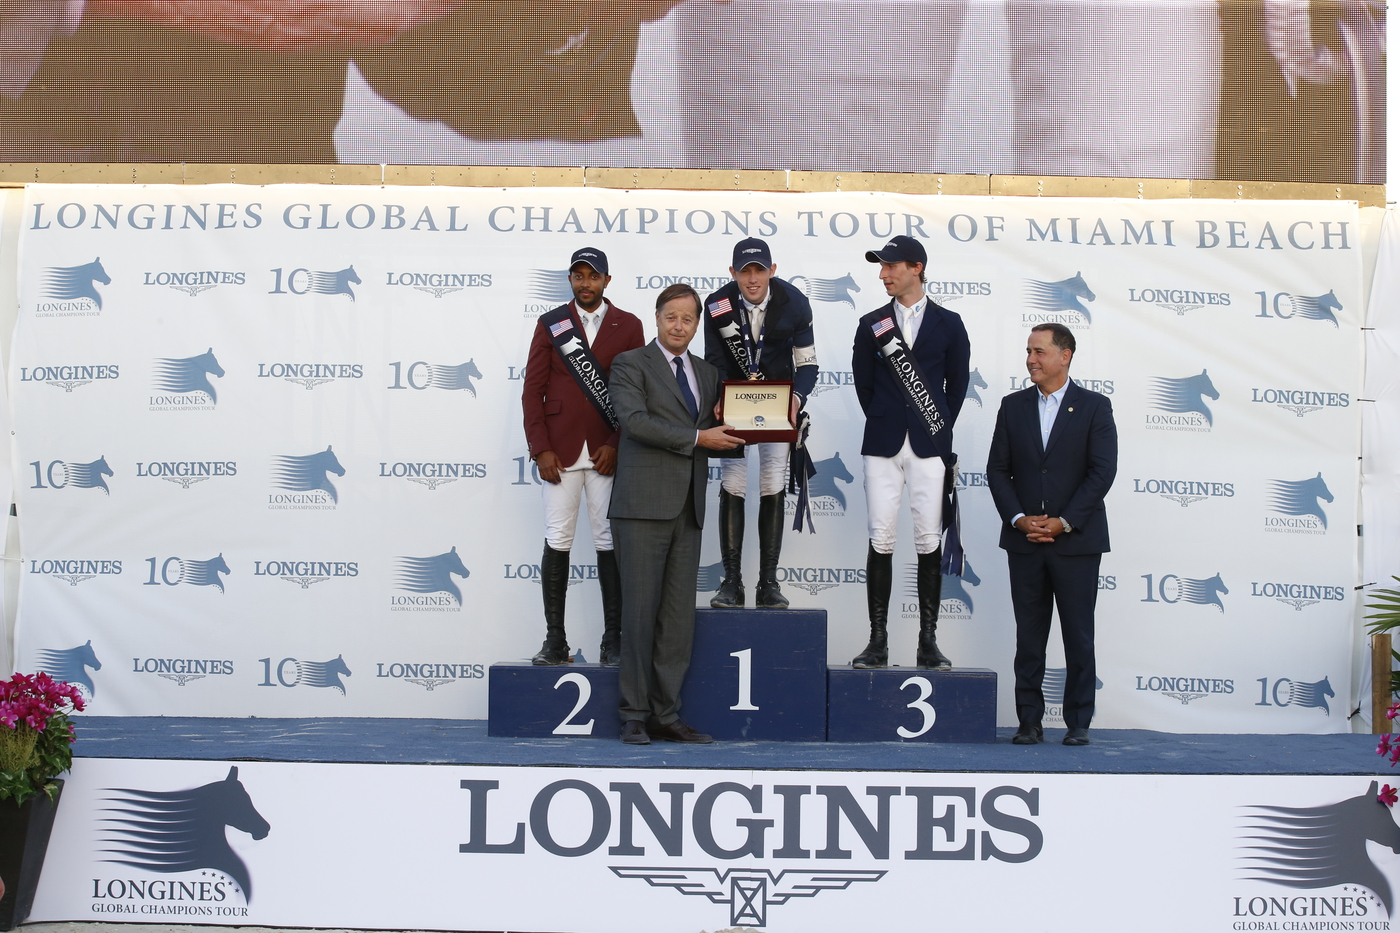 Longines Show Jumping Event: The first edition of the Longines Global Champions Tour of Miami Beach 4